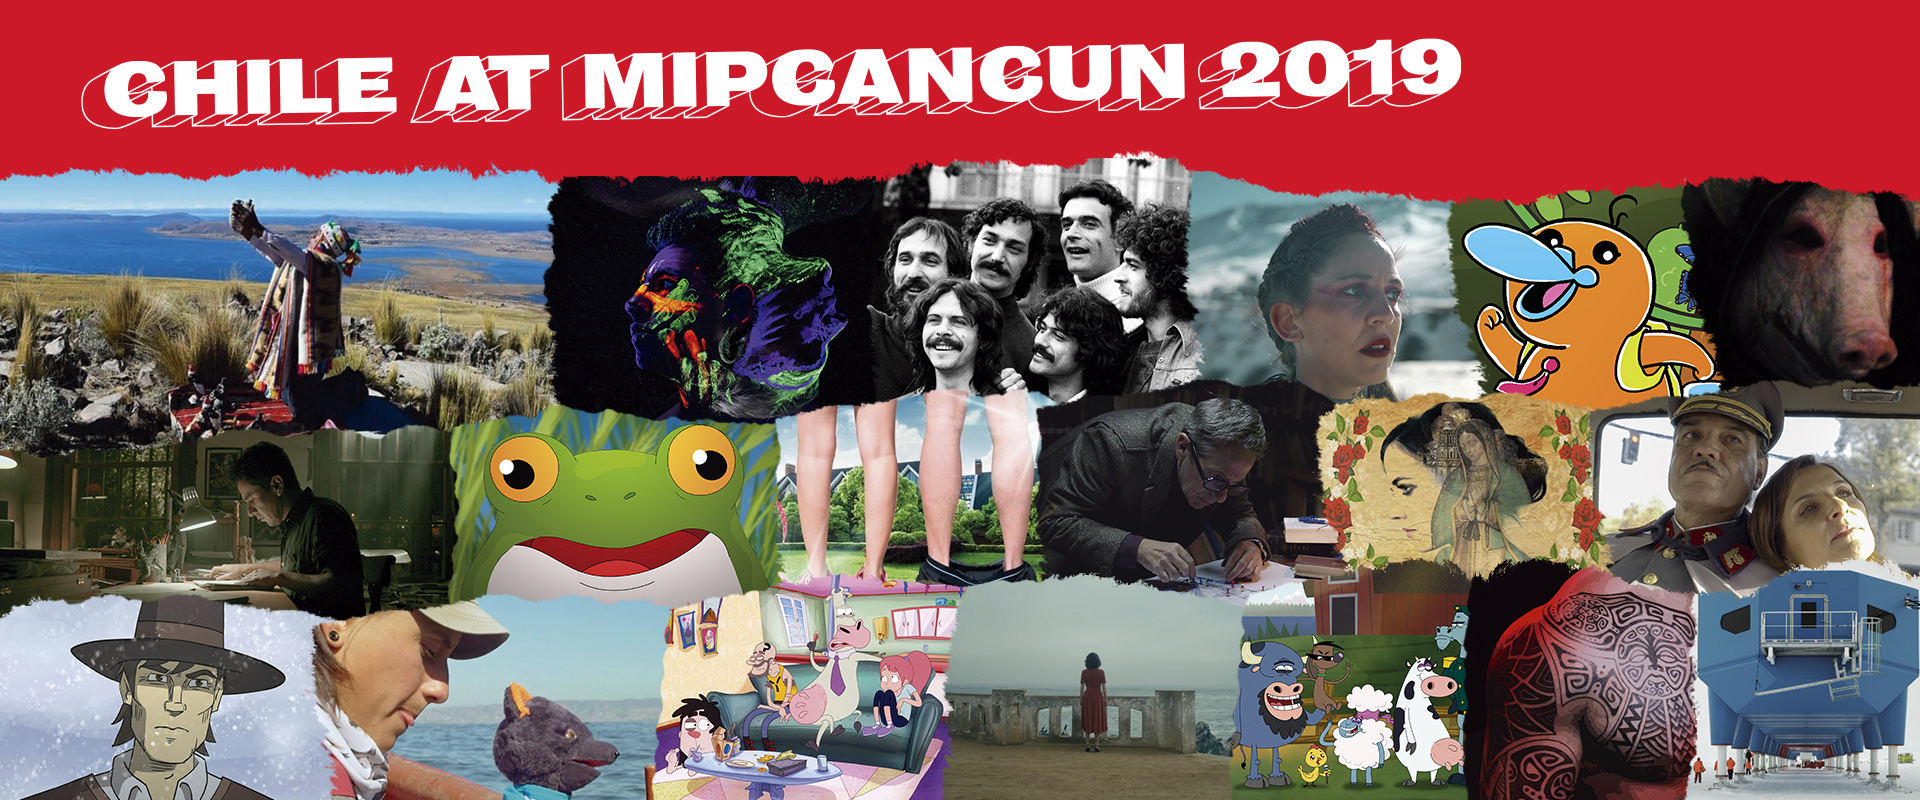 Oustanding Chilean Delegation set to participate in MIP Cancun 2019